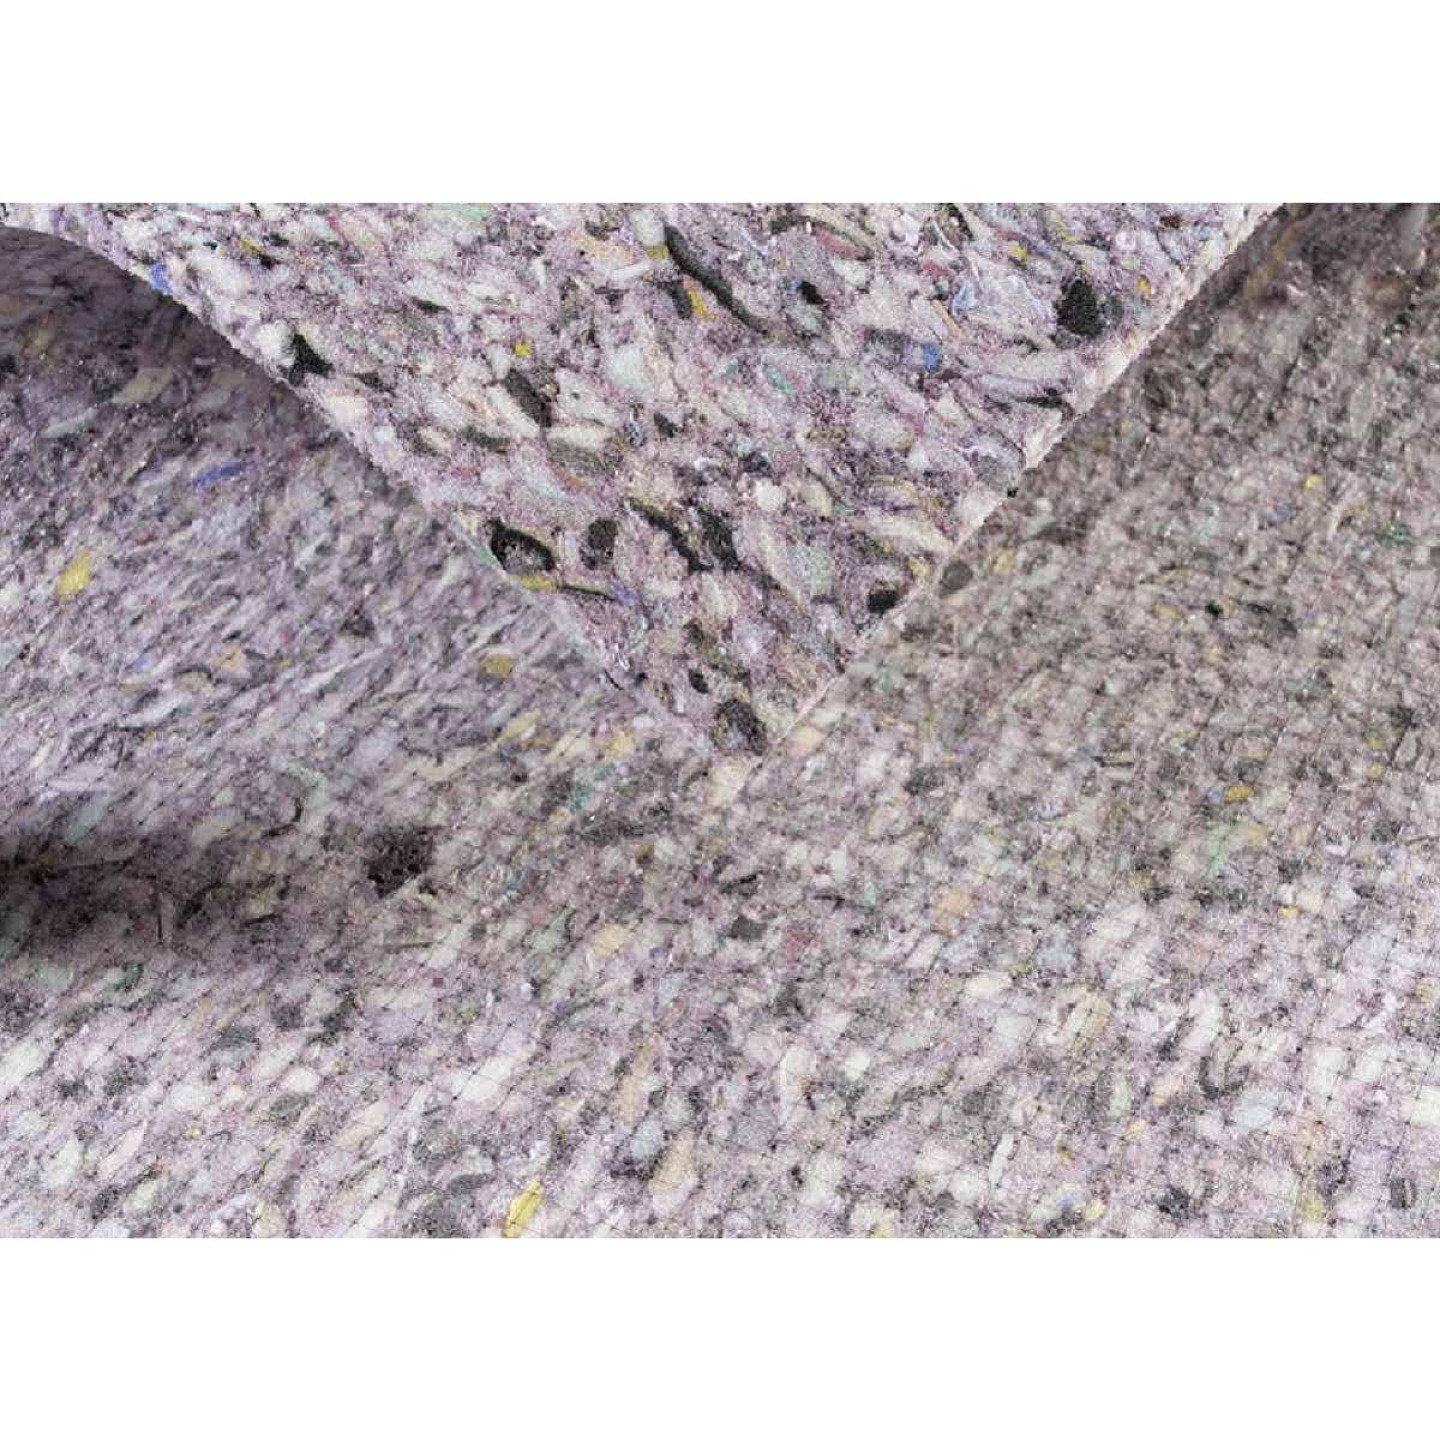 Shaw Ruby 1/2 In. Thick 8 Lb. Density Standard Carpet Pad Image 1